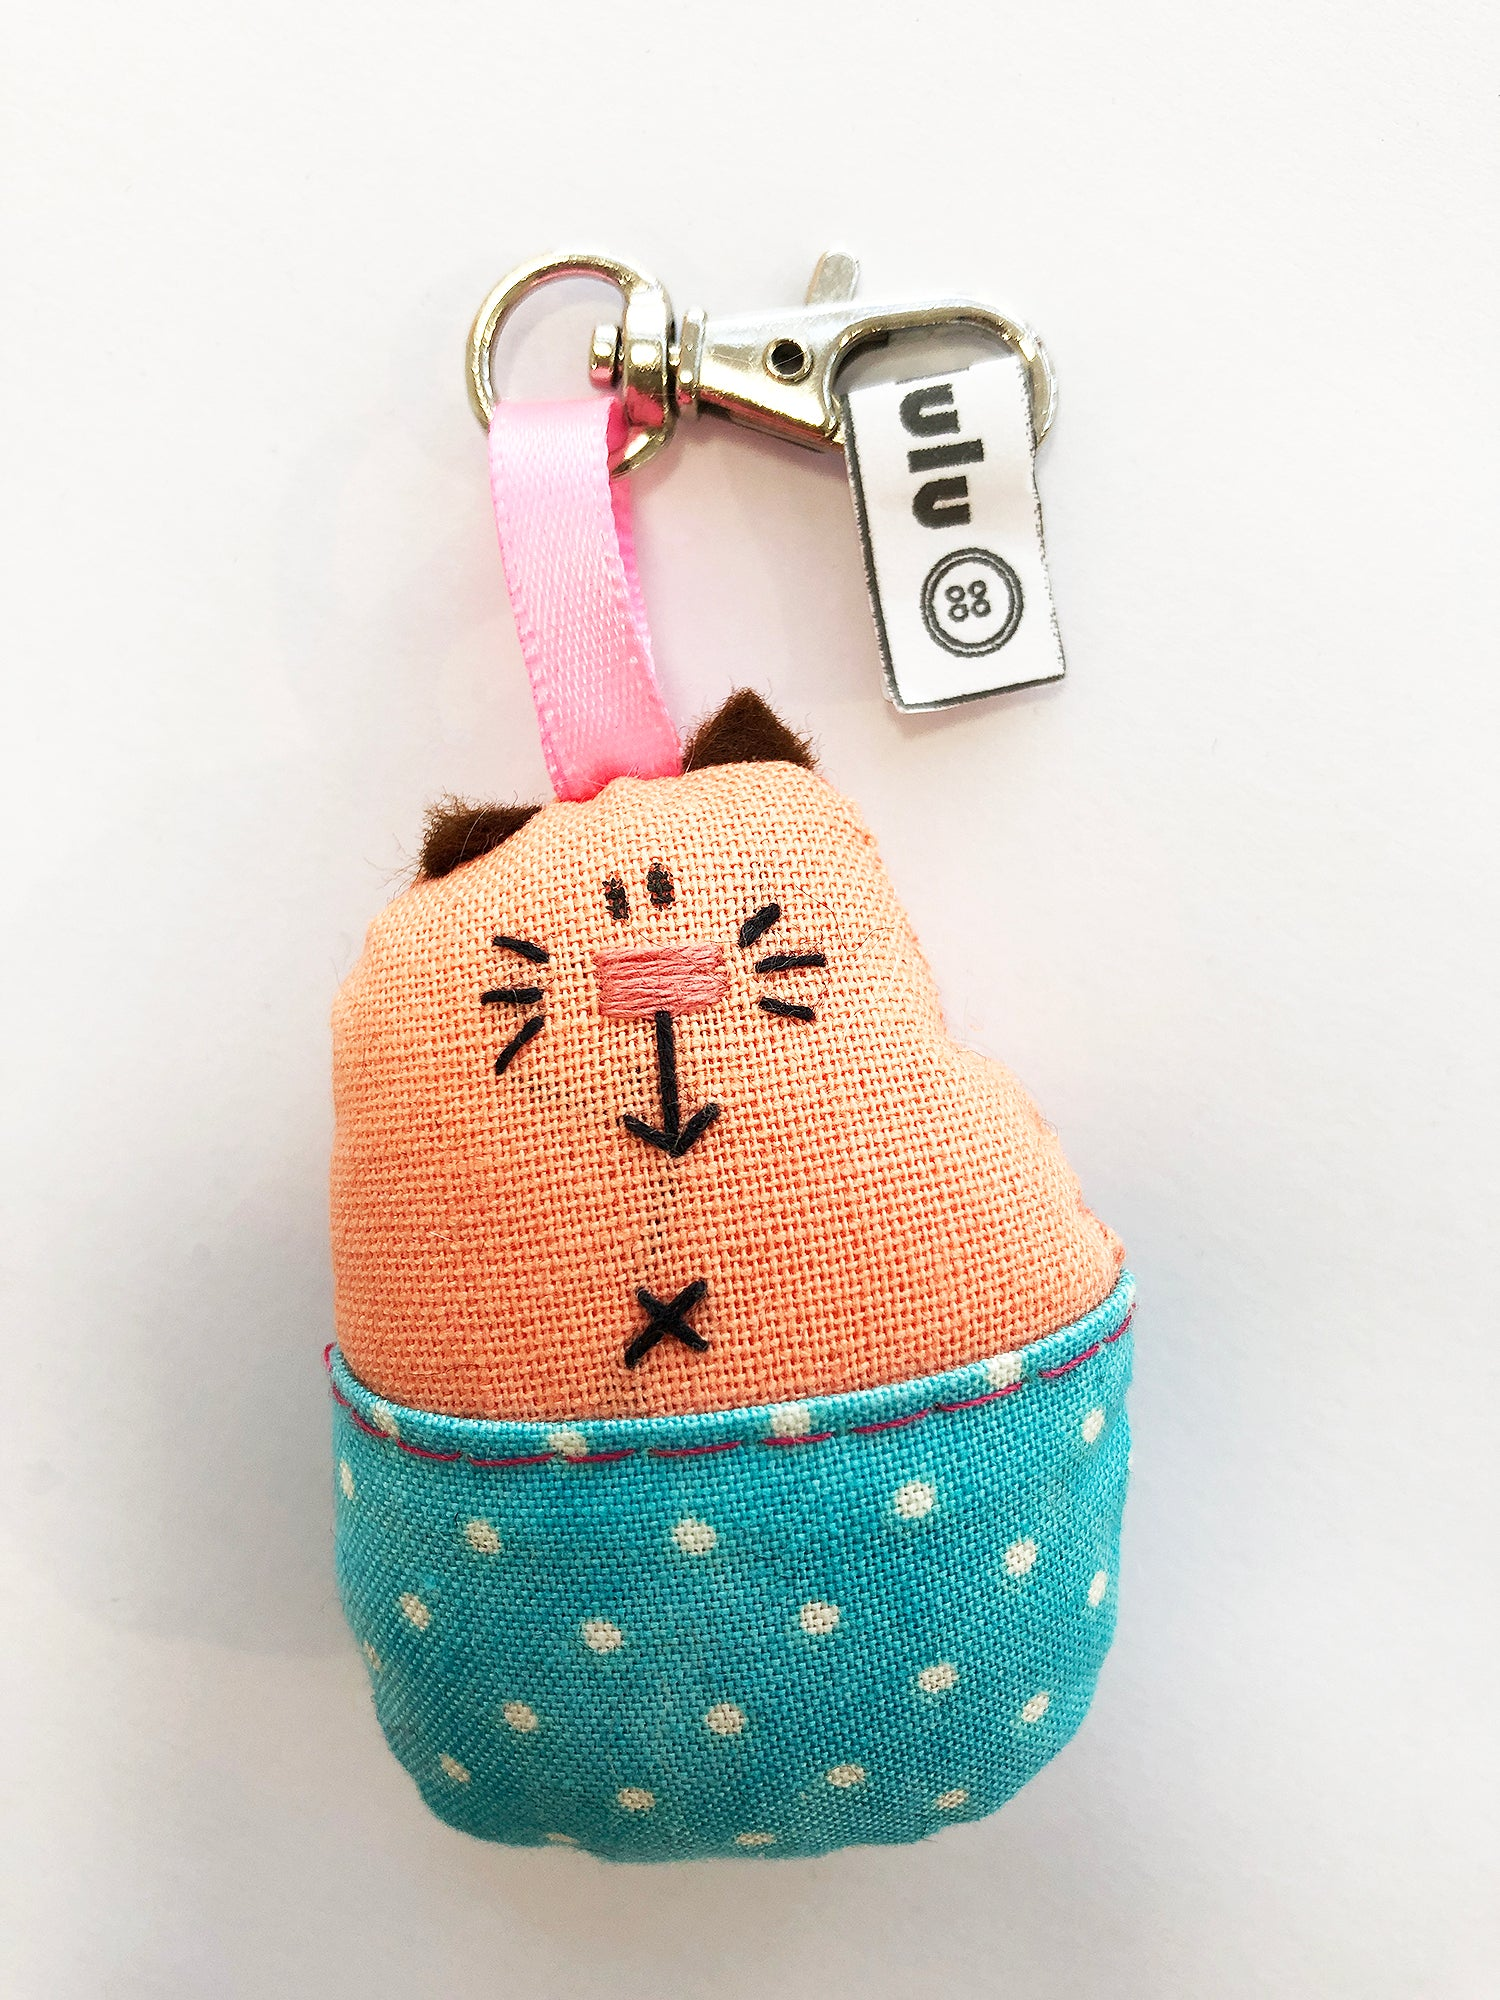 Pants Gang cat keyring